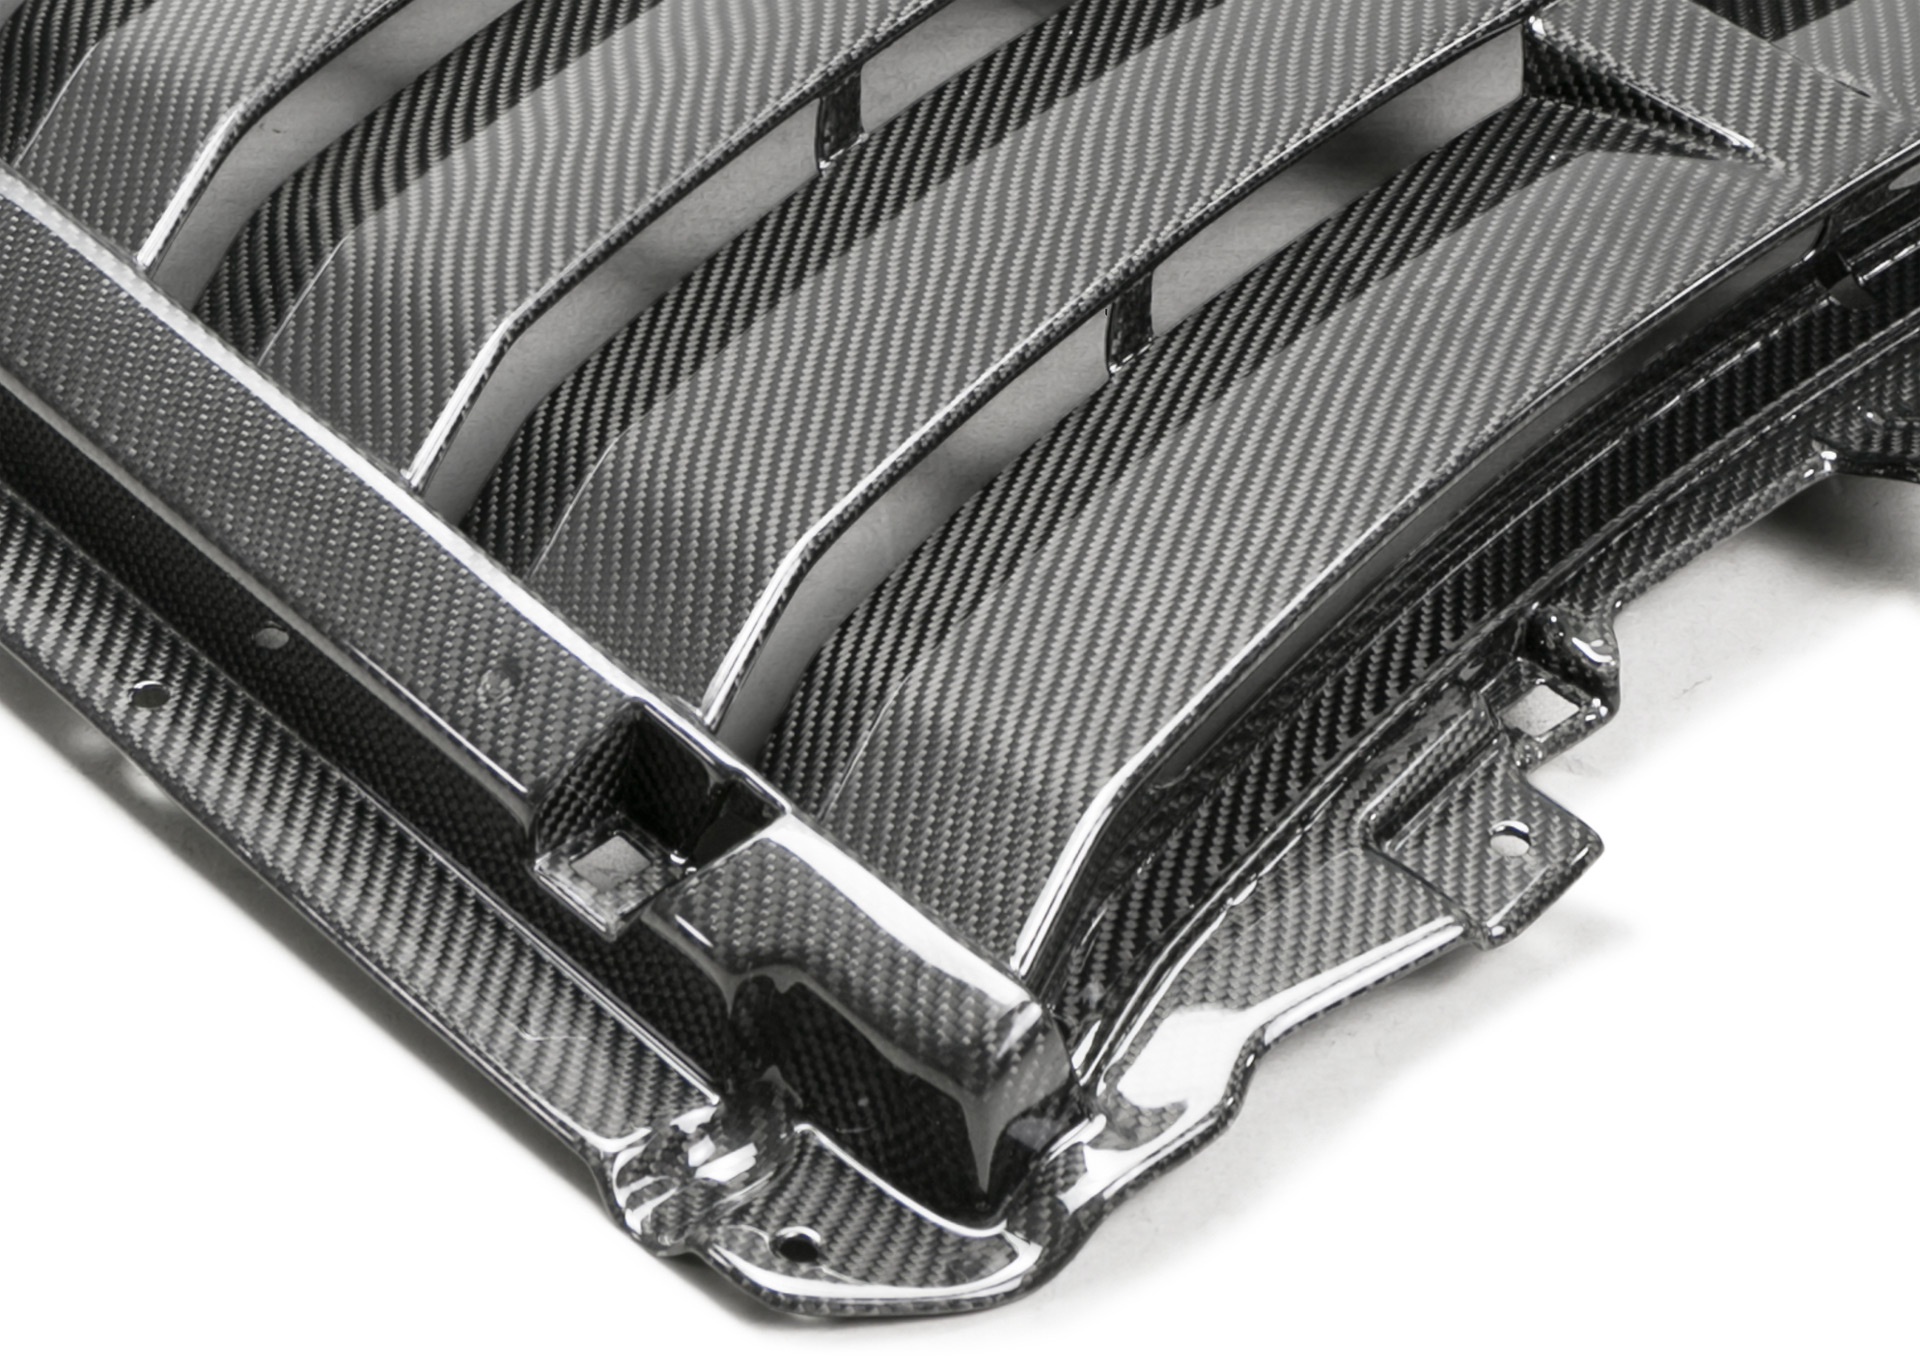 Ford Mustang GT500 carbon-fiber hood vent from Ford Performance